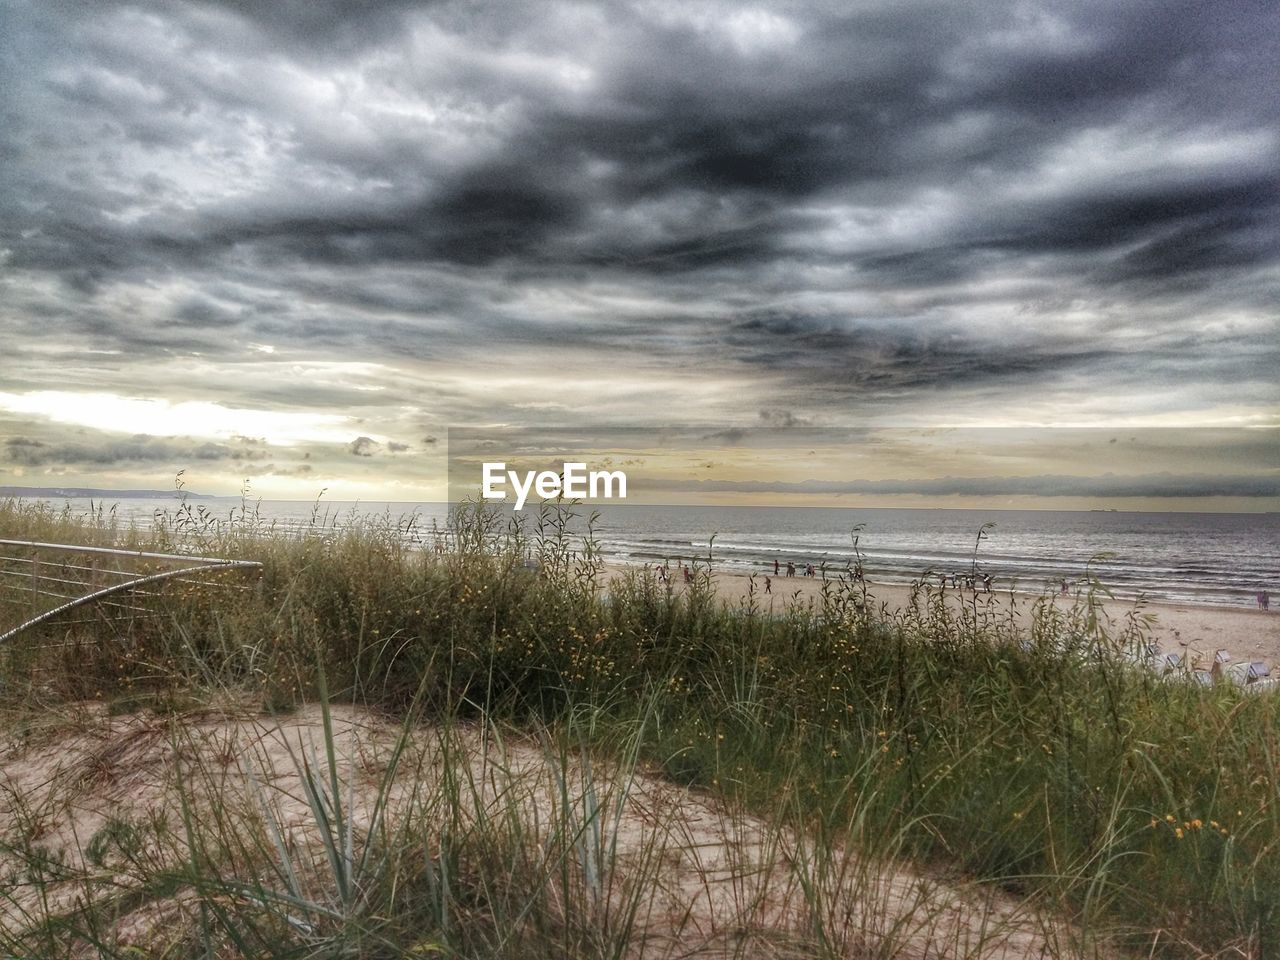 cloud - sky, sky, water, sea, beauty in nature, grass, beach, land, tranquility, tranquil scene, scenics - nature, nature, plant, horizon, marram grass, no people, horizon over water, growth, sand, outdoors, timothy grass